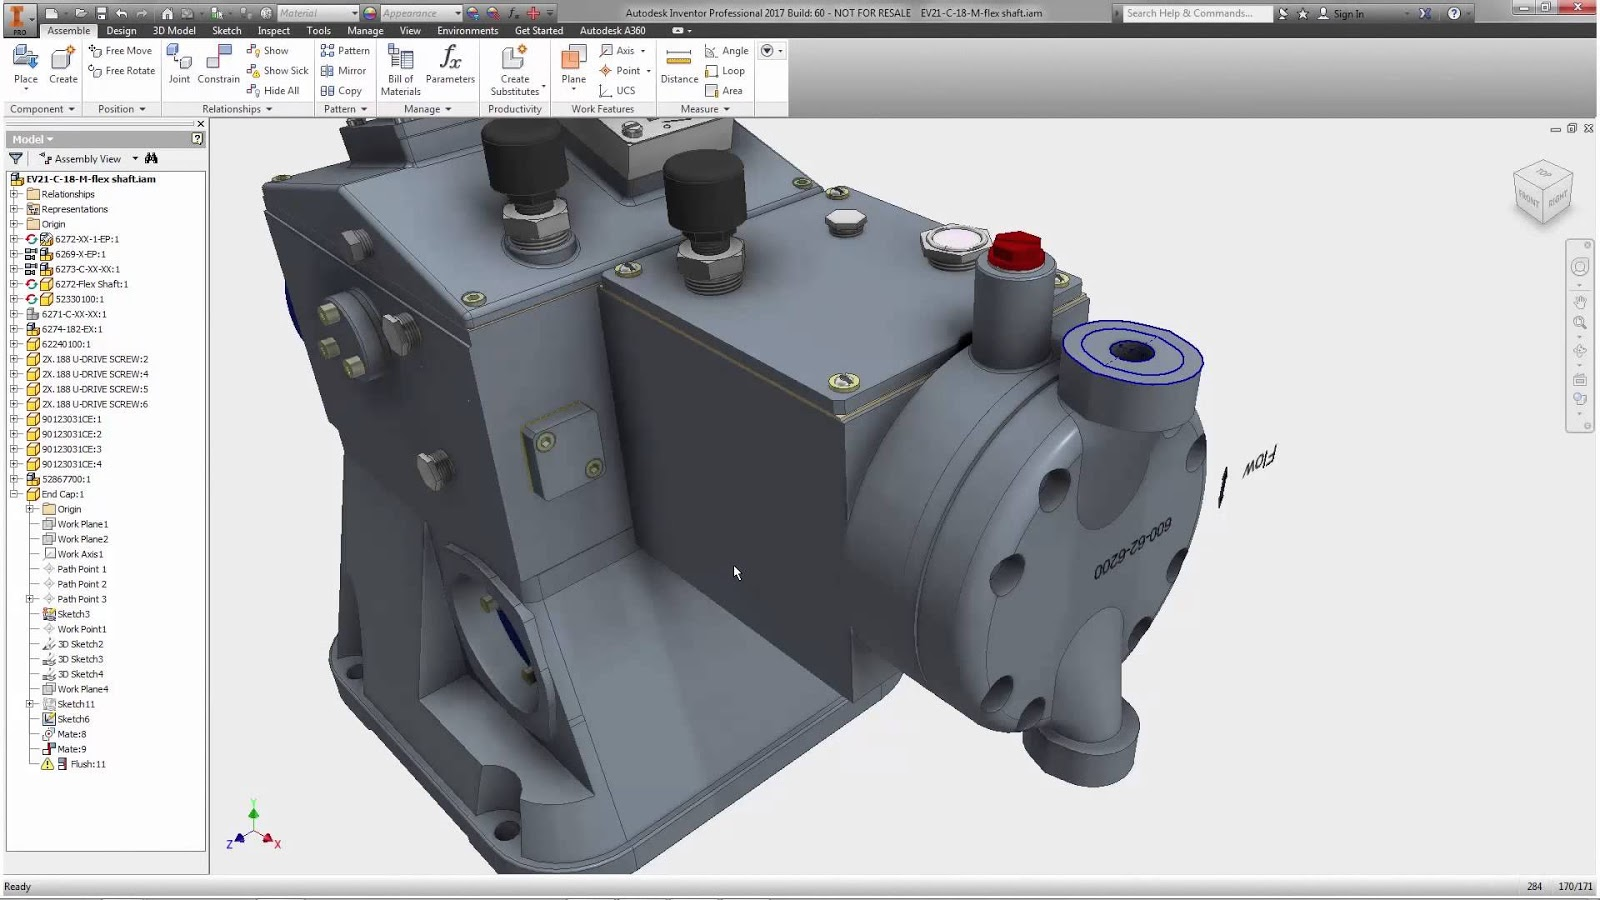 Autodesk Inventor Pro v2017 64 Bit ISO Free Download Full Version - PC FILESS